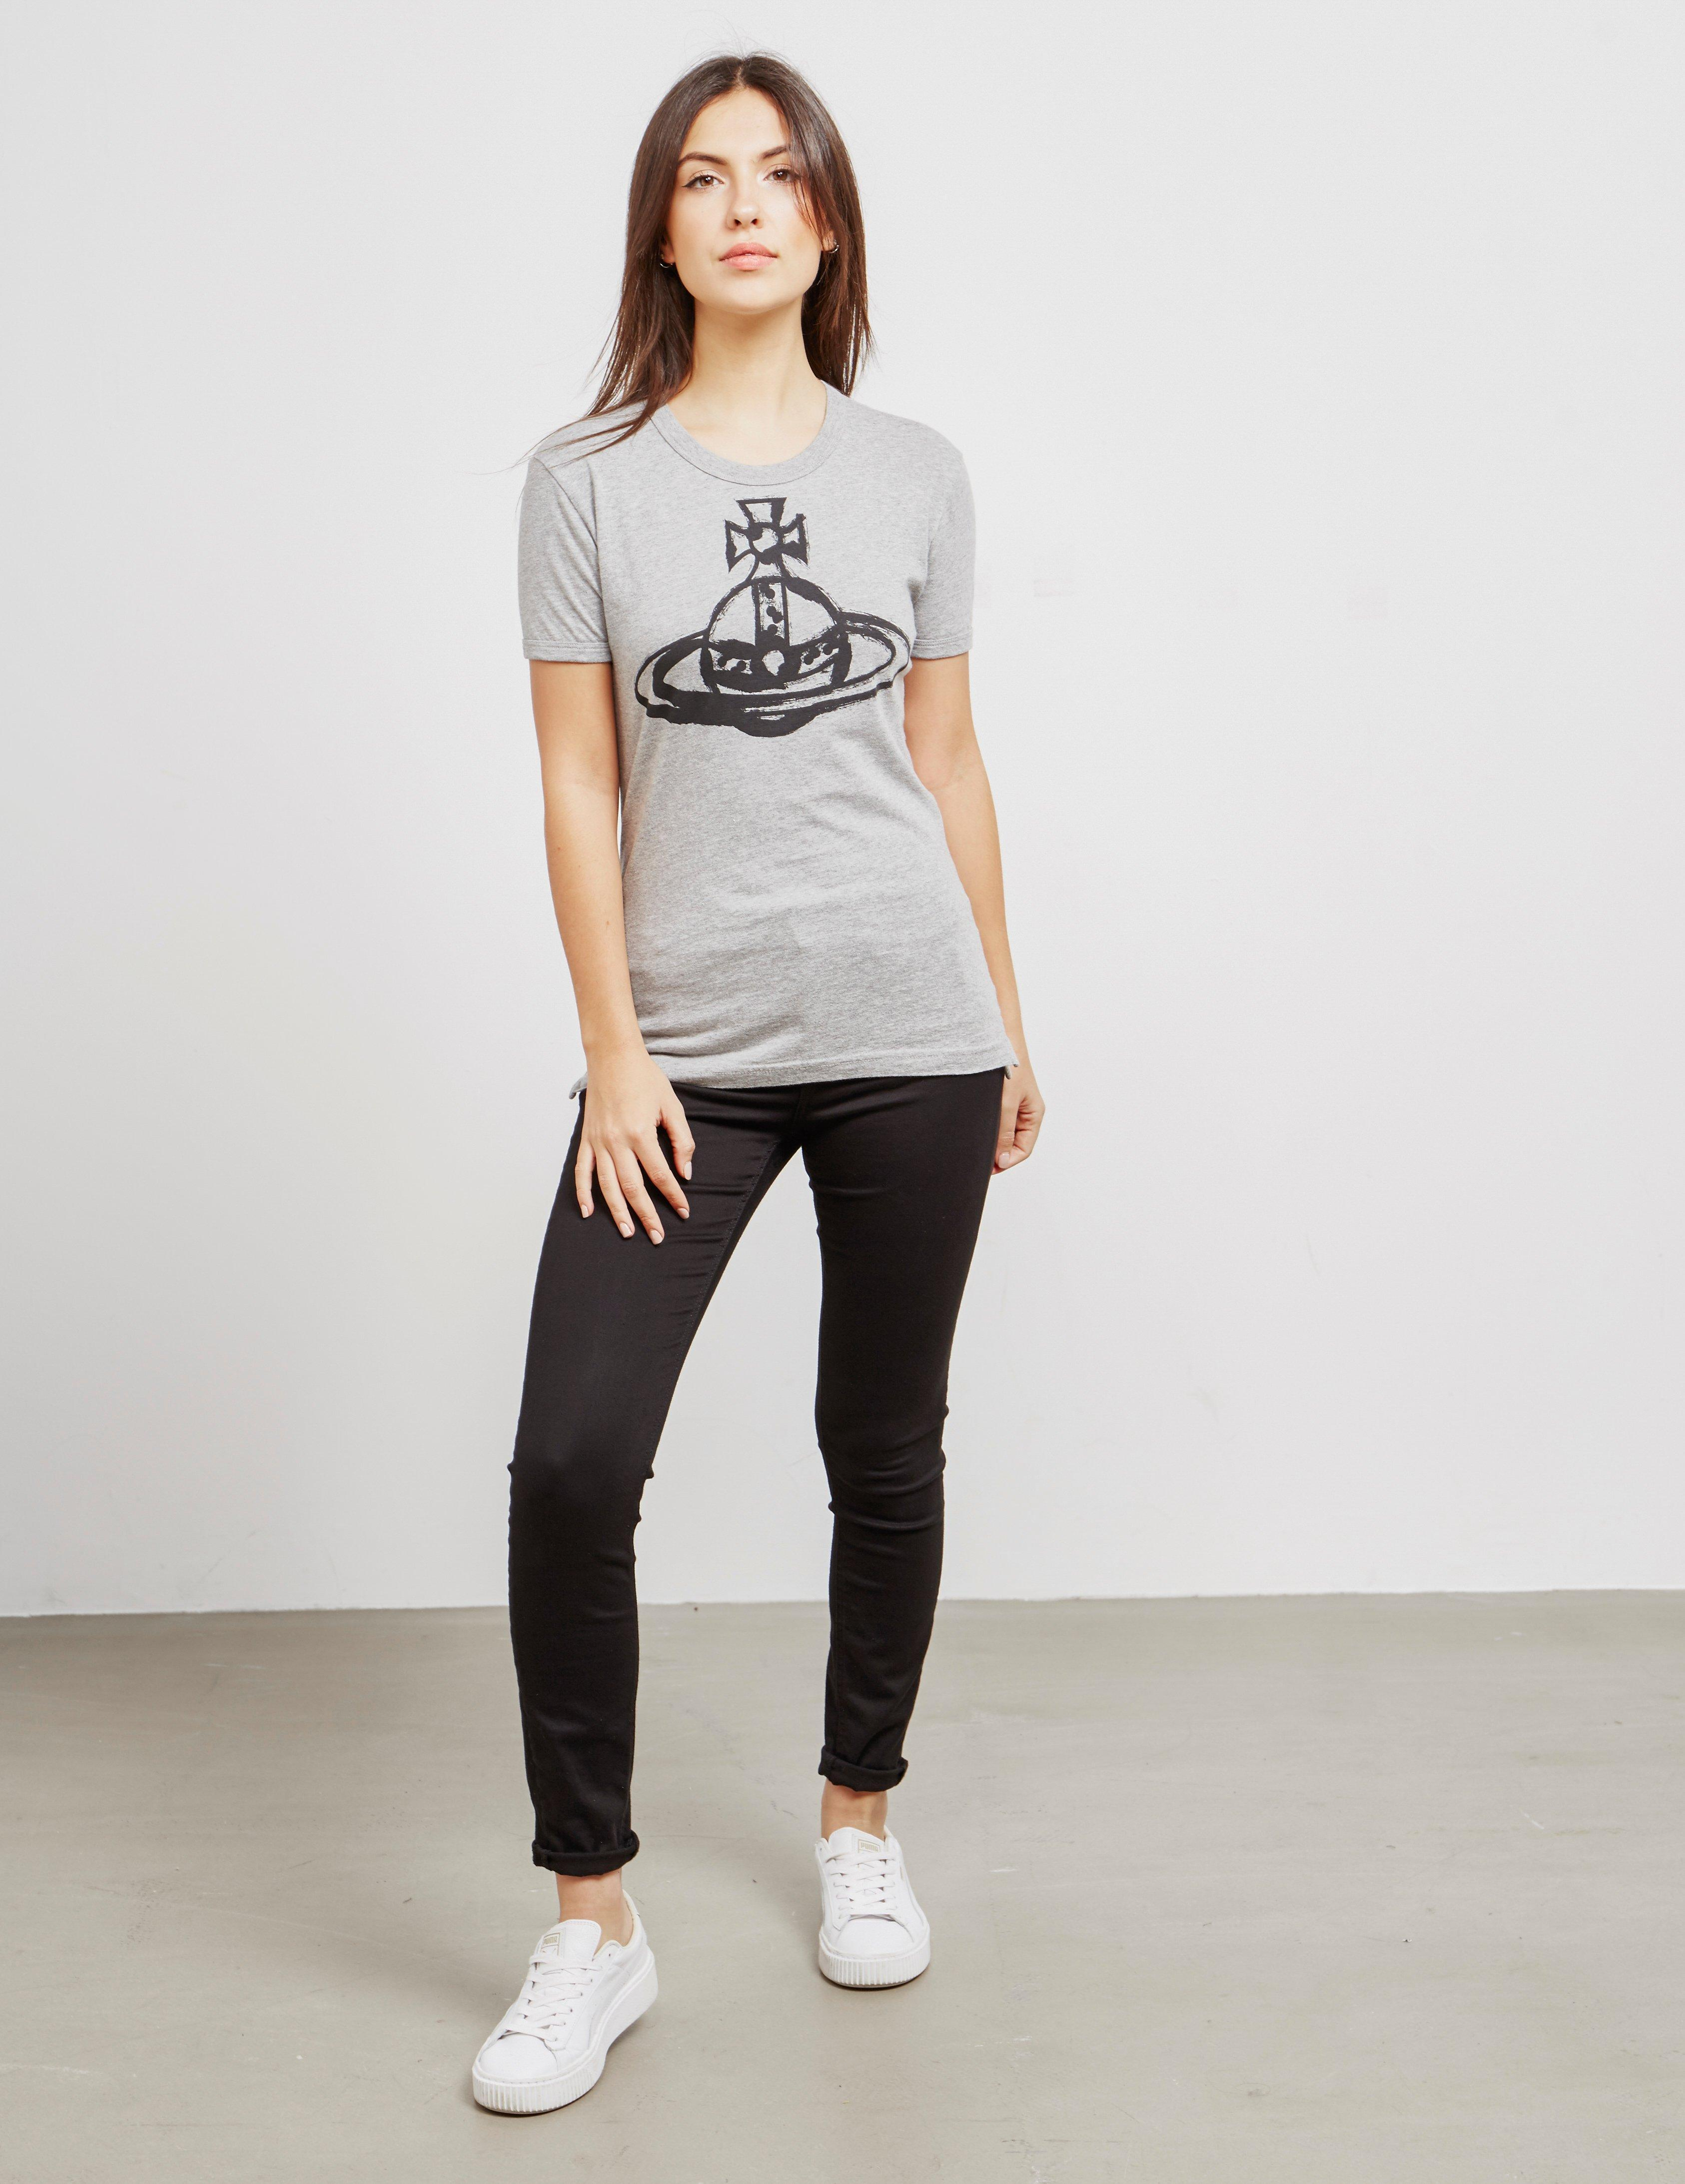 cfc417d9e Vivienne Westwood Anglomania Brush Stroke Short Sleeve T-shirt Grey in Gray  - Lyst